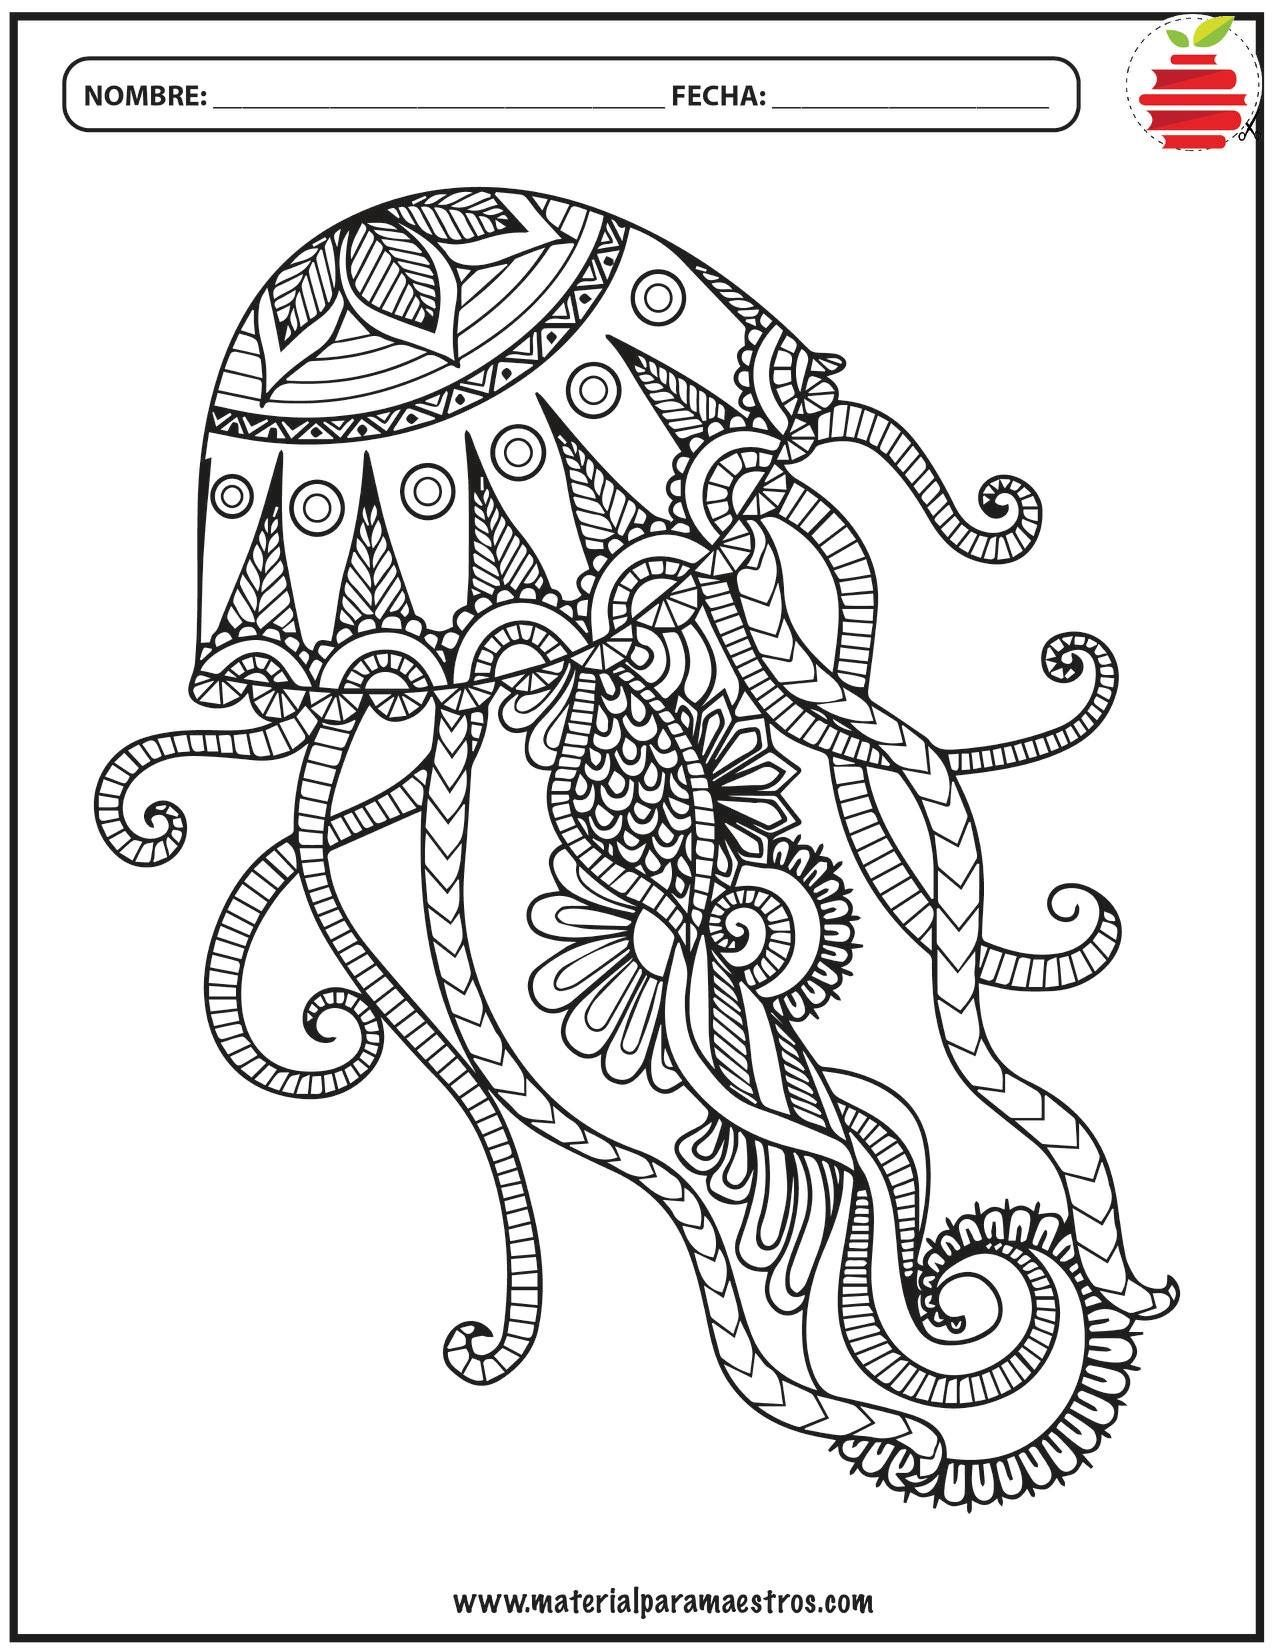 Pin By Gokhan On Cizim Mandala Coloring Books Mandala Coloring Pages Free Printable Coloring Pages